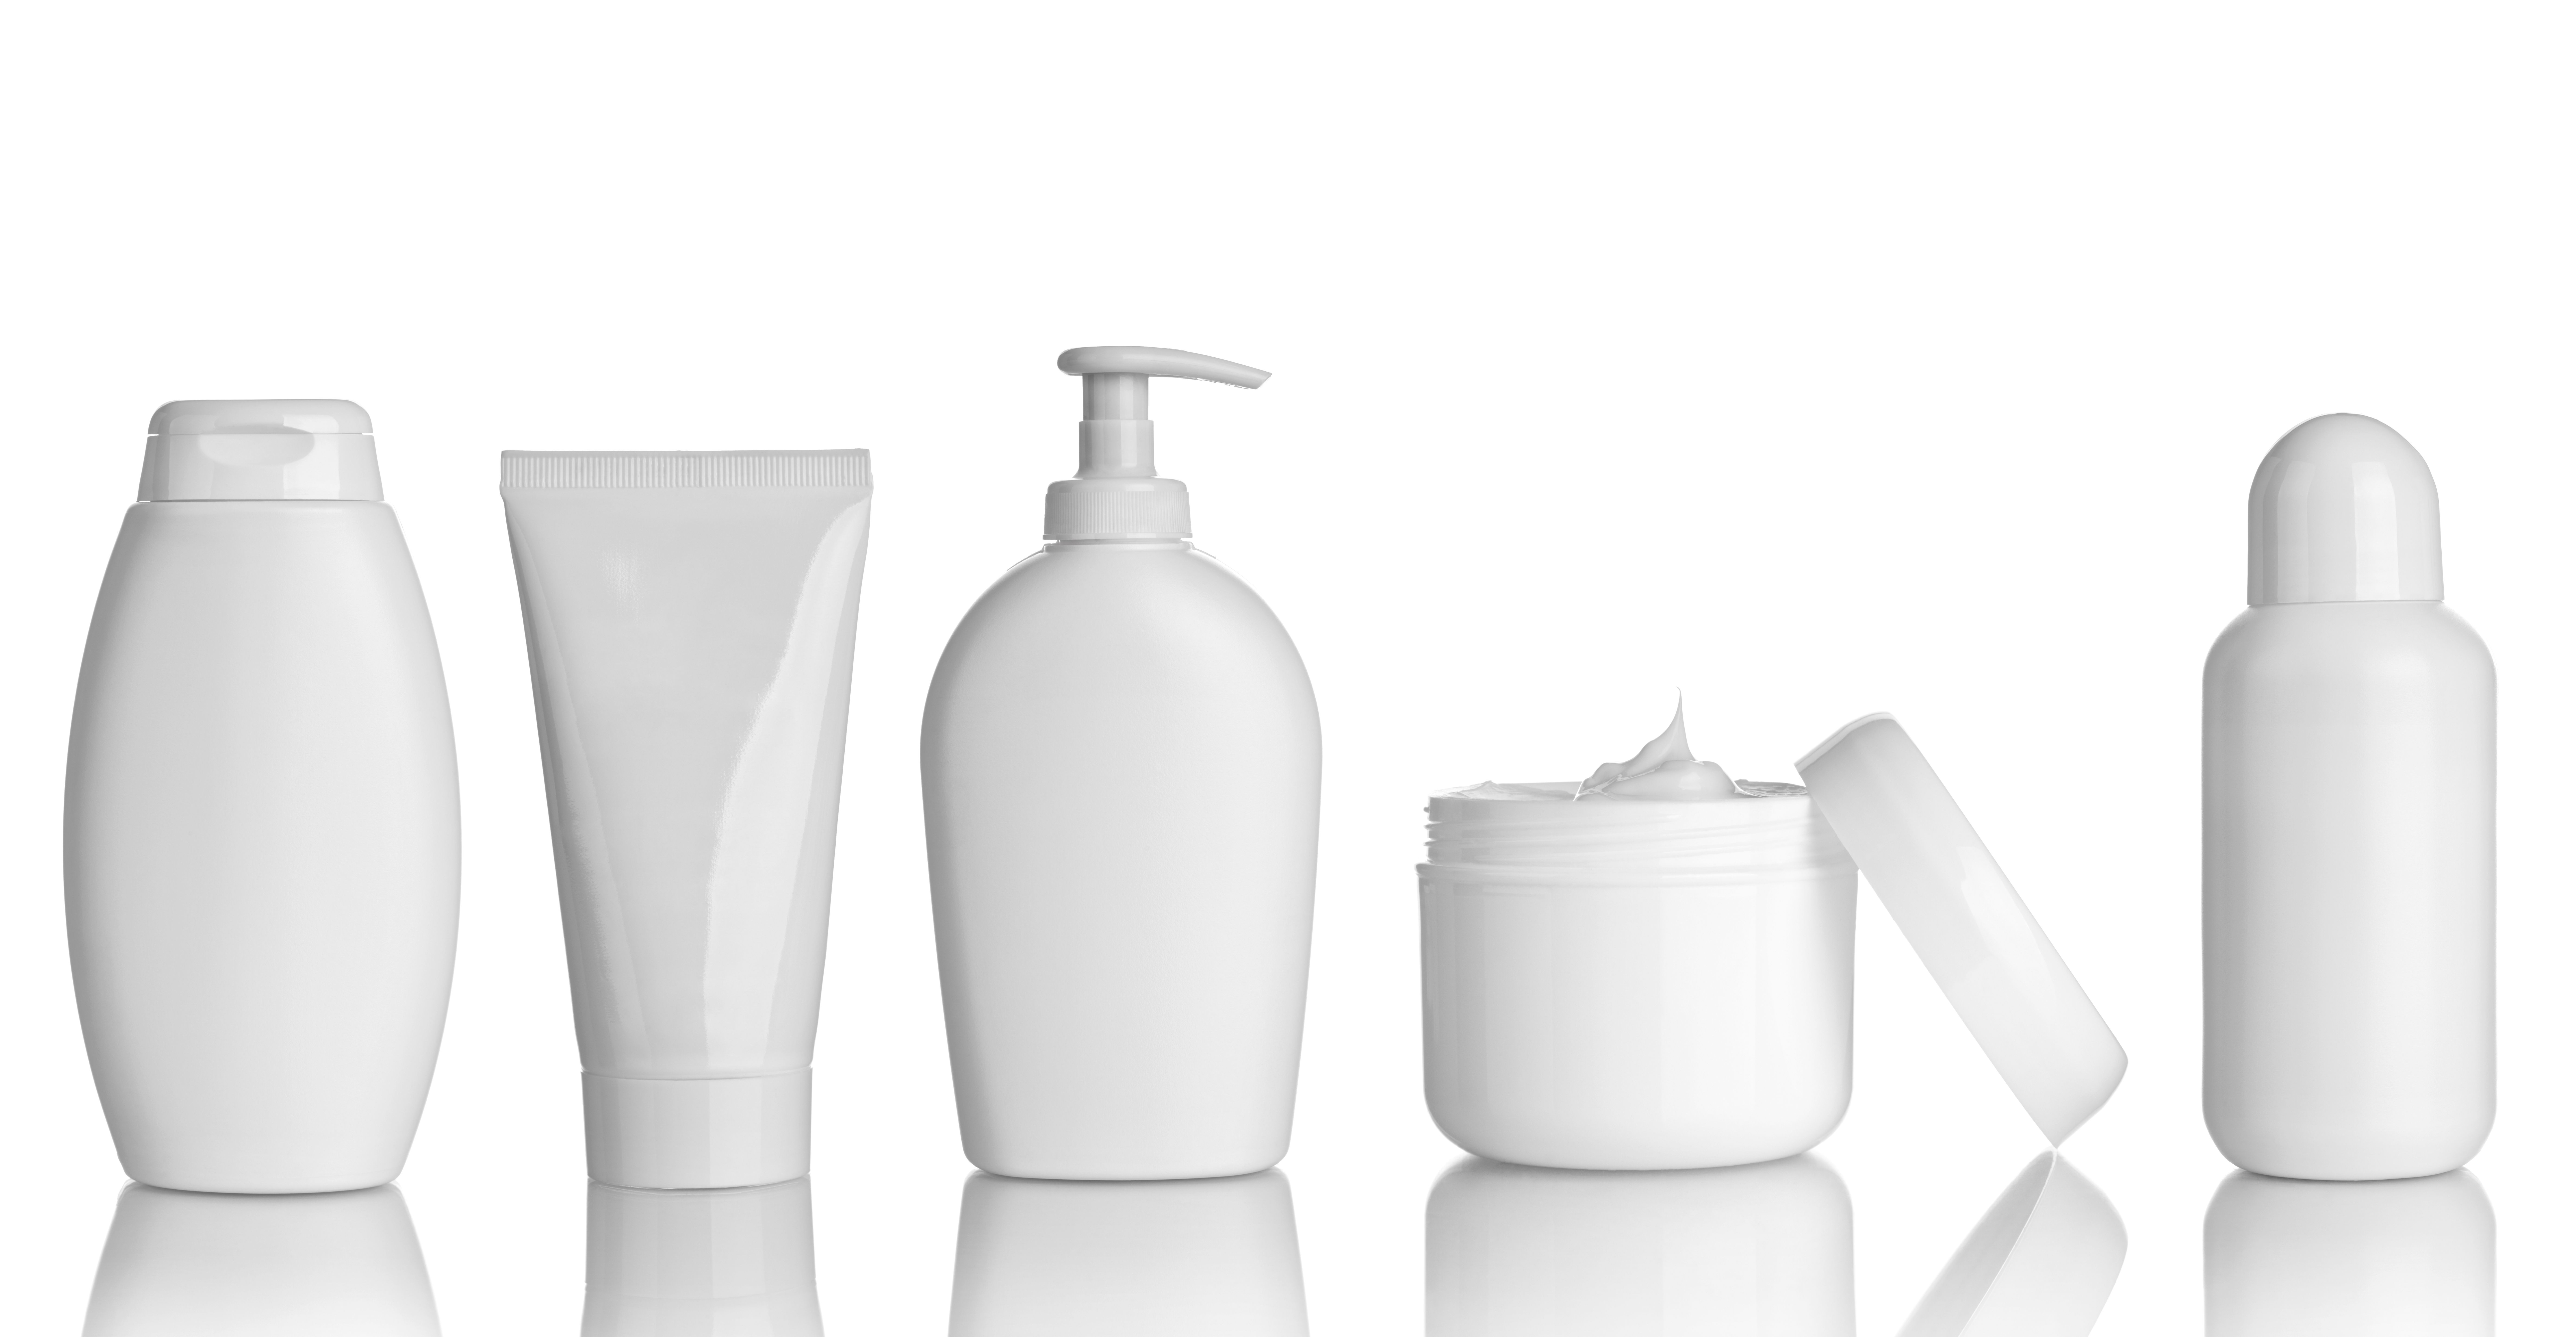 collection of  various beauty hygiene containers on white background.